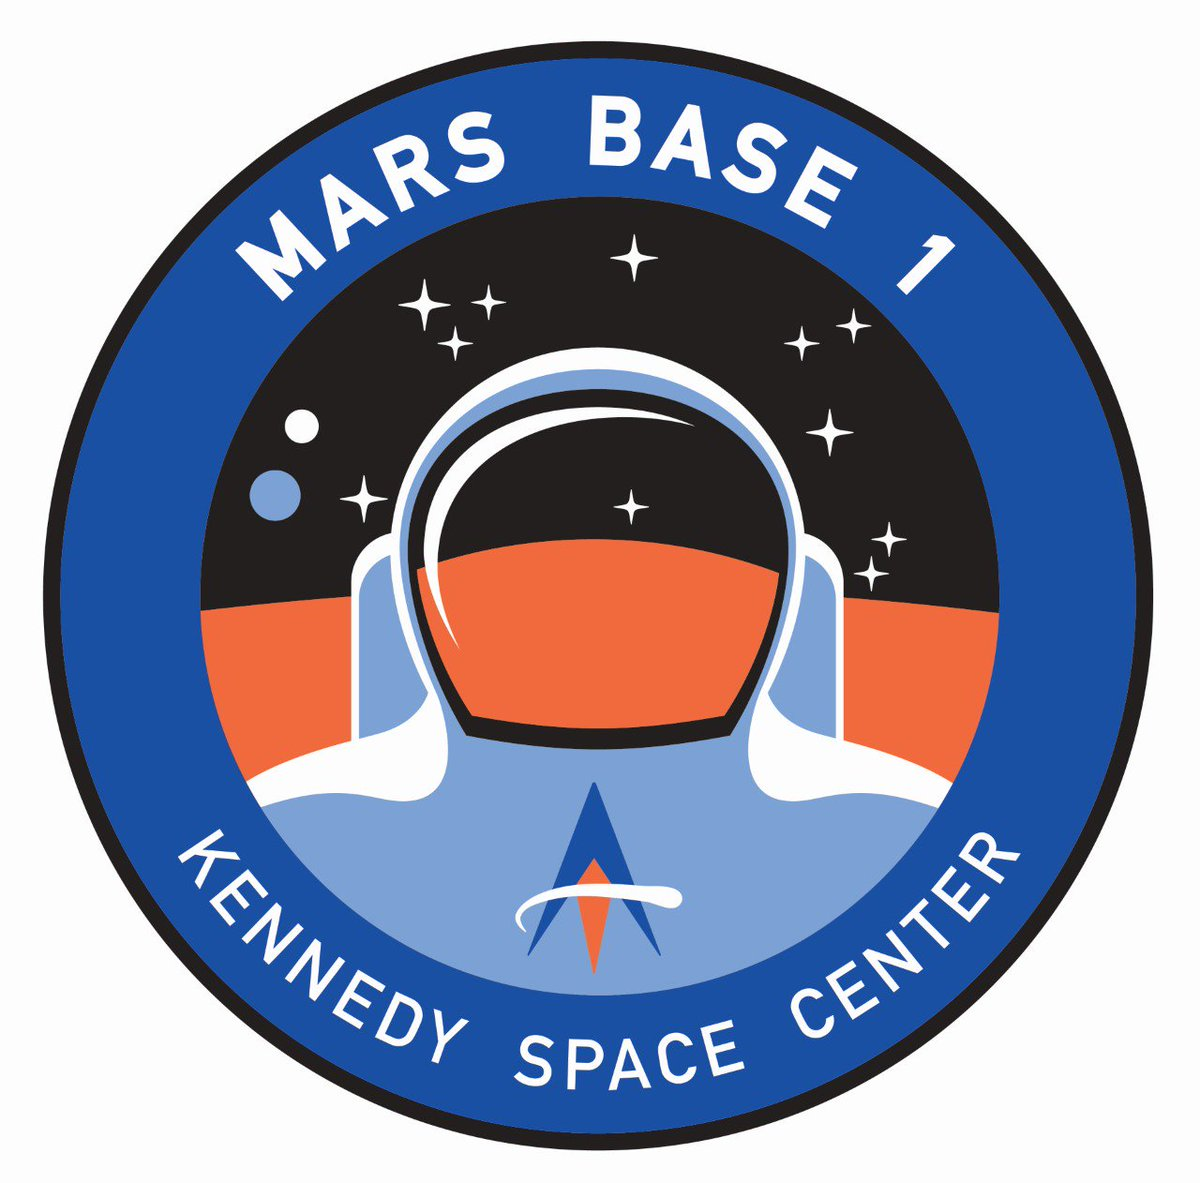 Ready to train for a mission to #Mars with the all new #MarsBase1 program in the Astronaut Training Experience at #KennedySpaceCenter? 2018 dates now available, beginning February 11. Learn how to live and work on Mars as a rookie astronaut. https://t.co/NWVyiTVCy2